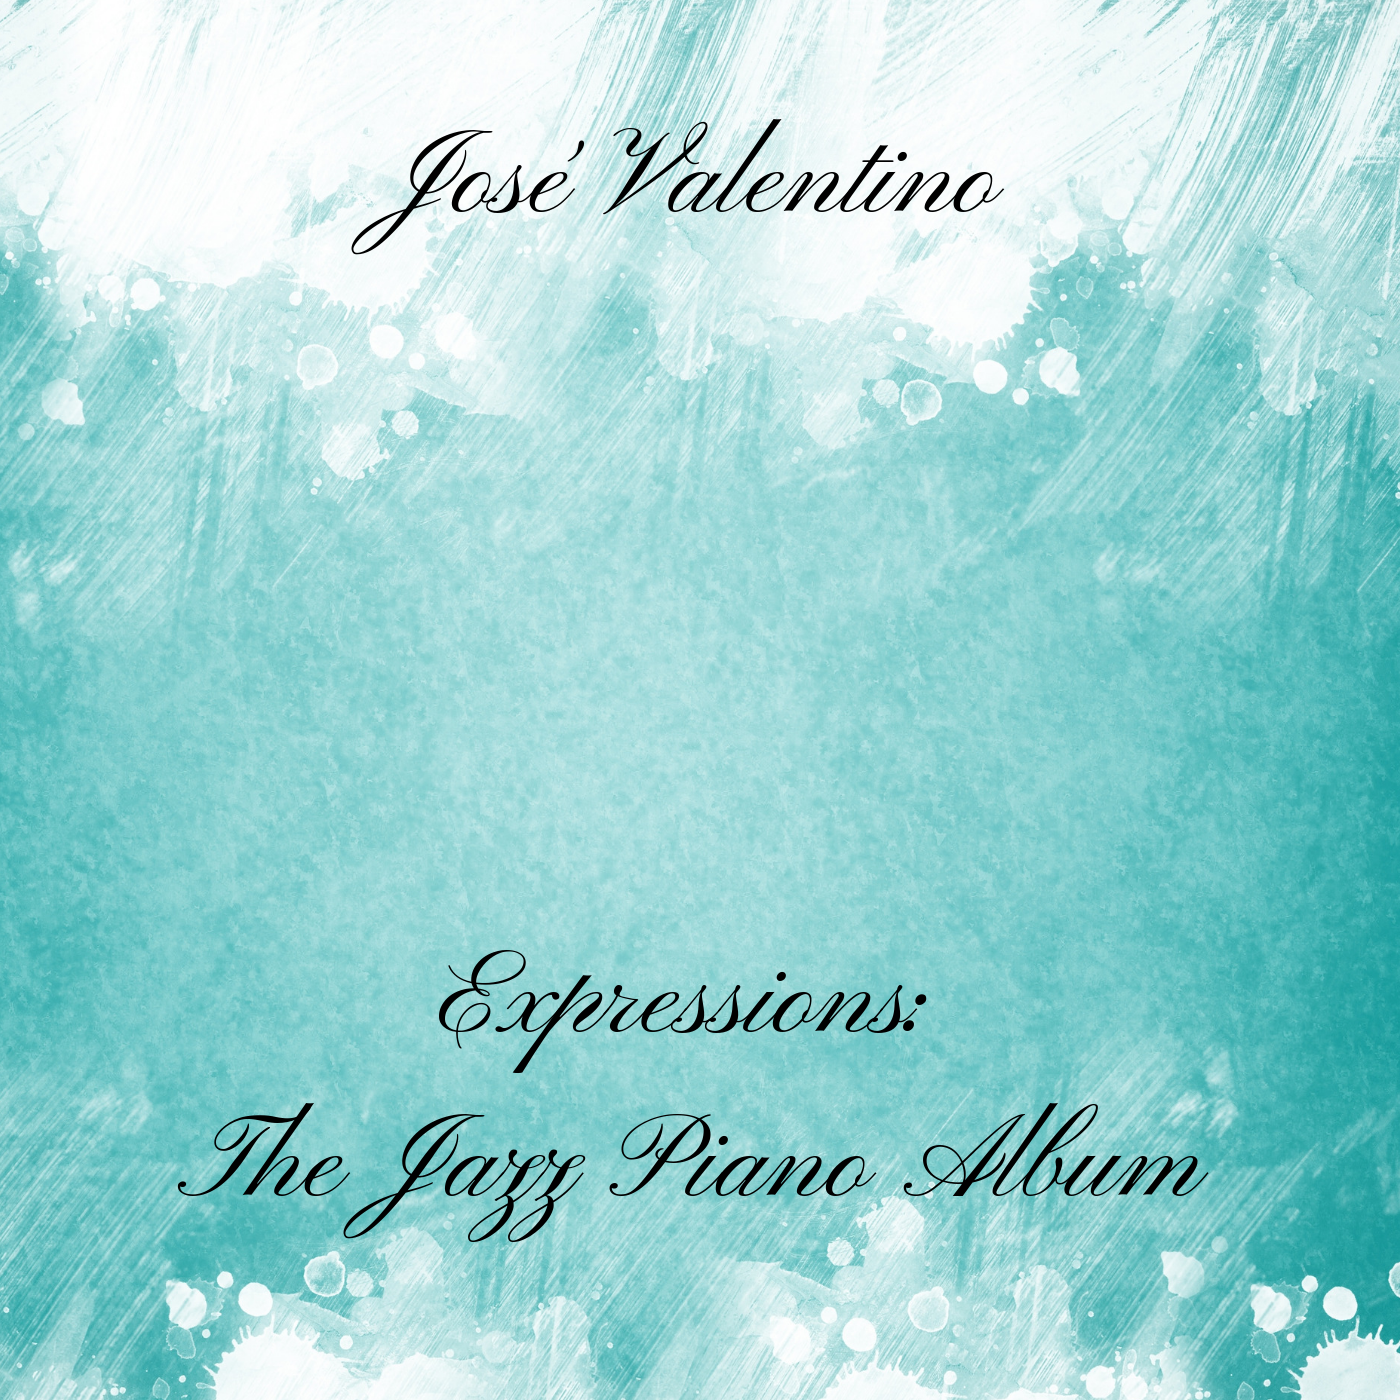 This album illuminates one of the most unique aspects of José's musicianship as he performs the piano in an illusive approach resembling a dialogue between two pianists putting an equal emphasis on both hands.